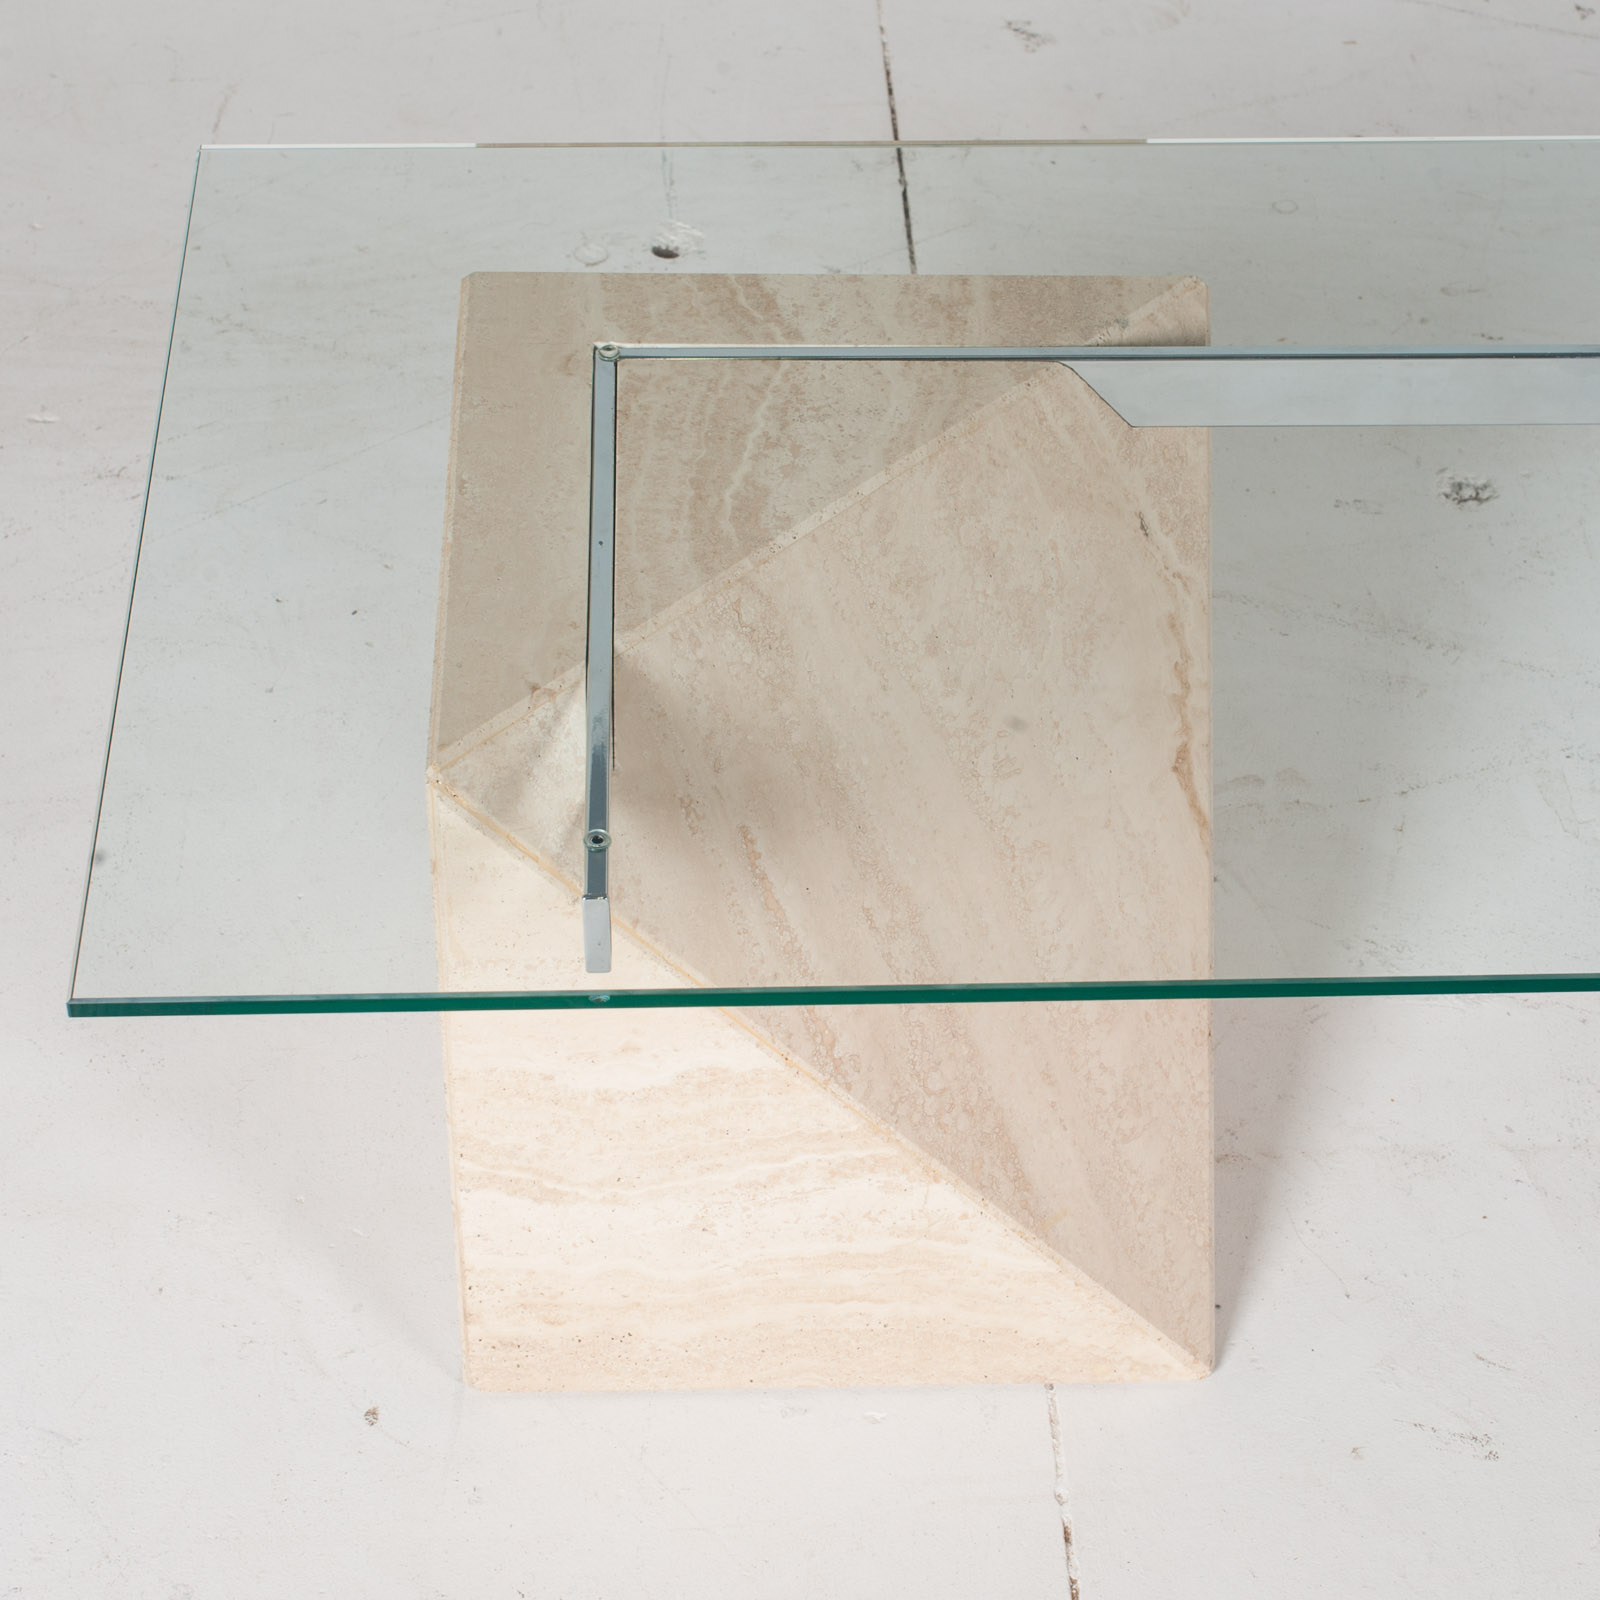 Coffee Table By Artedi In Travertine, Cantilevered Glass And Chrome, 1970s, Italy4